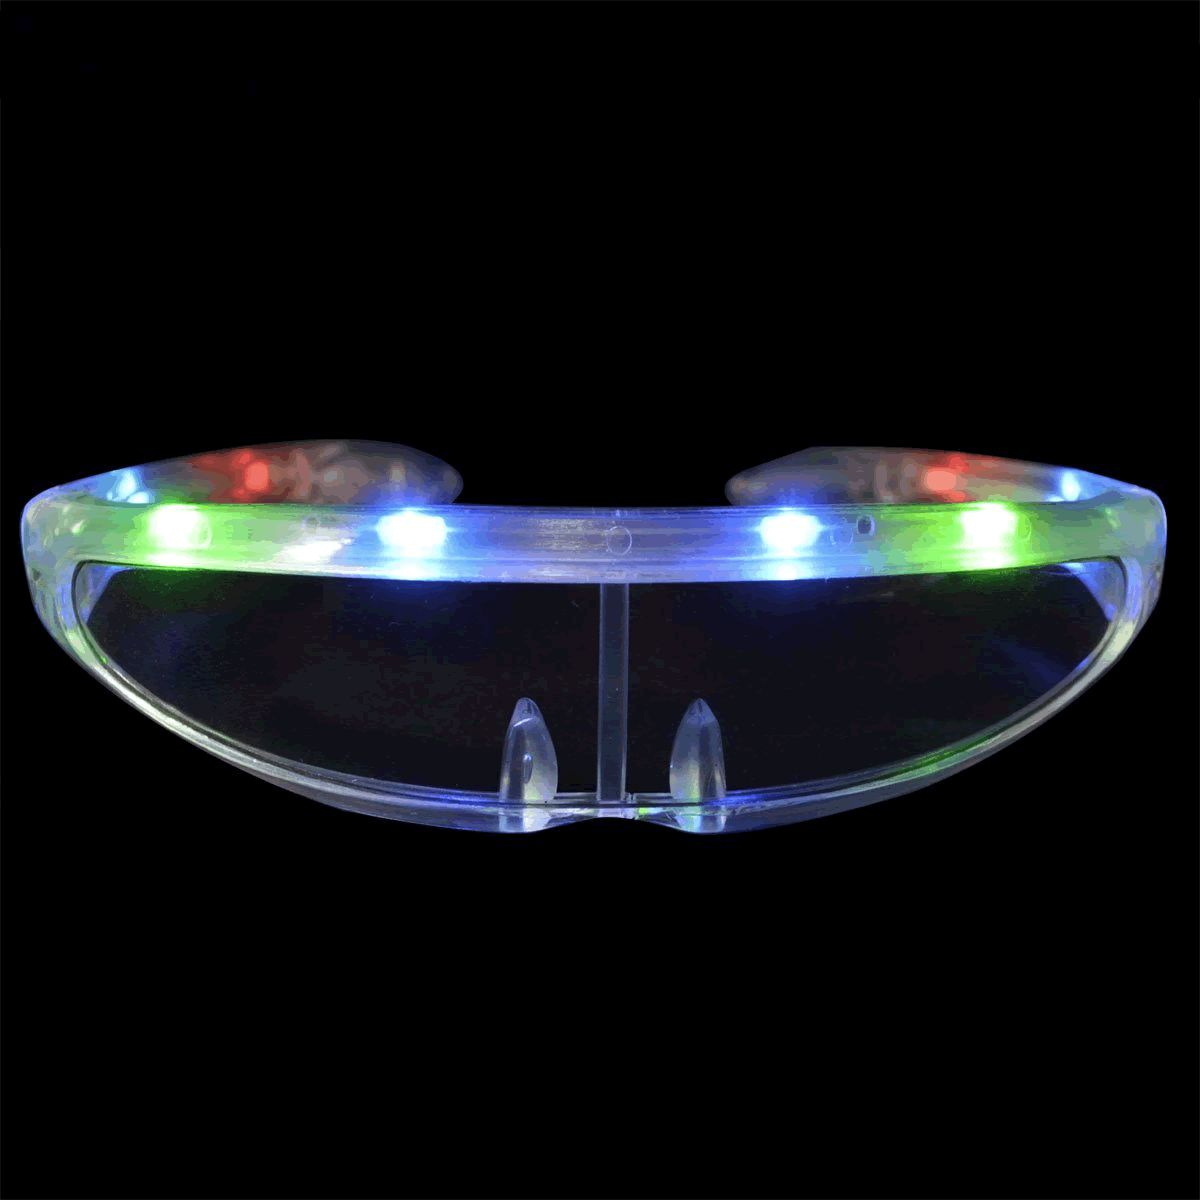 Futuristic LED SUNGLASSES Multicolor by Blinkee